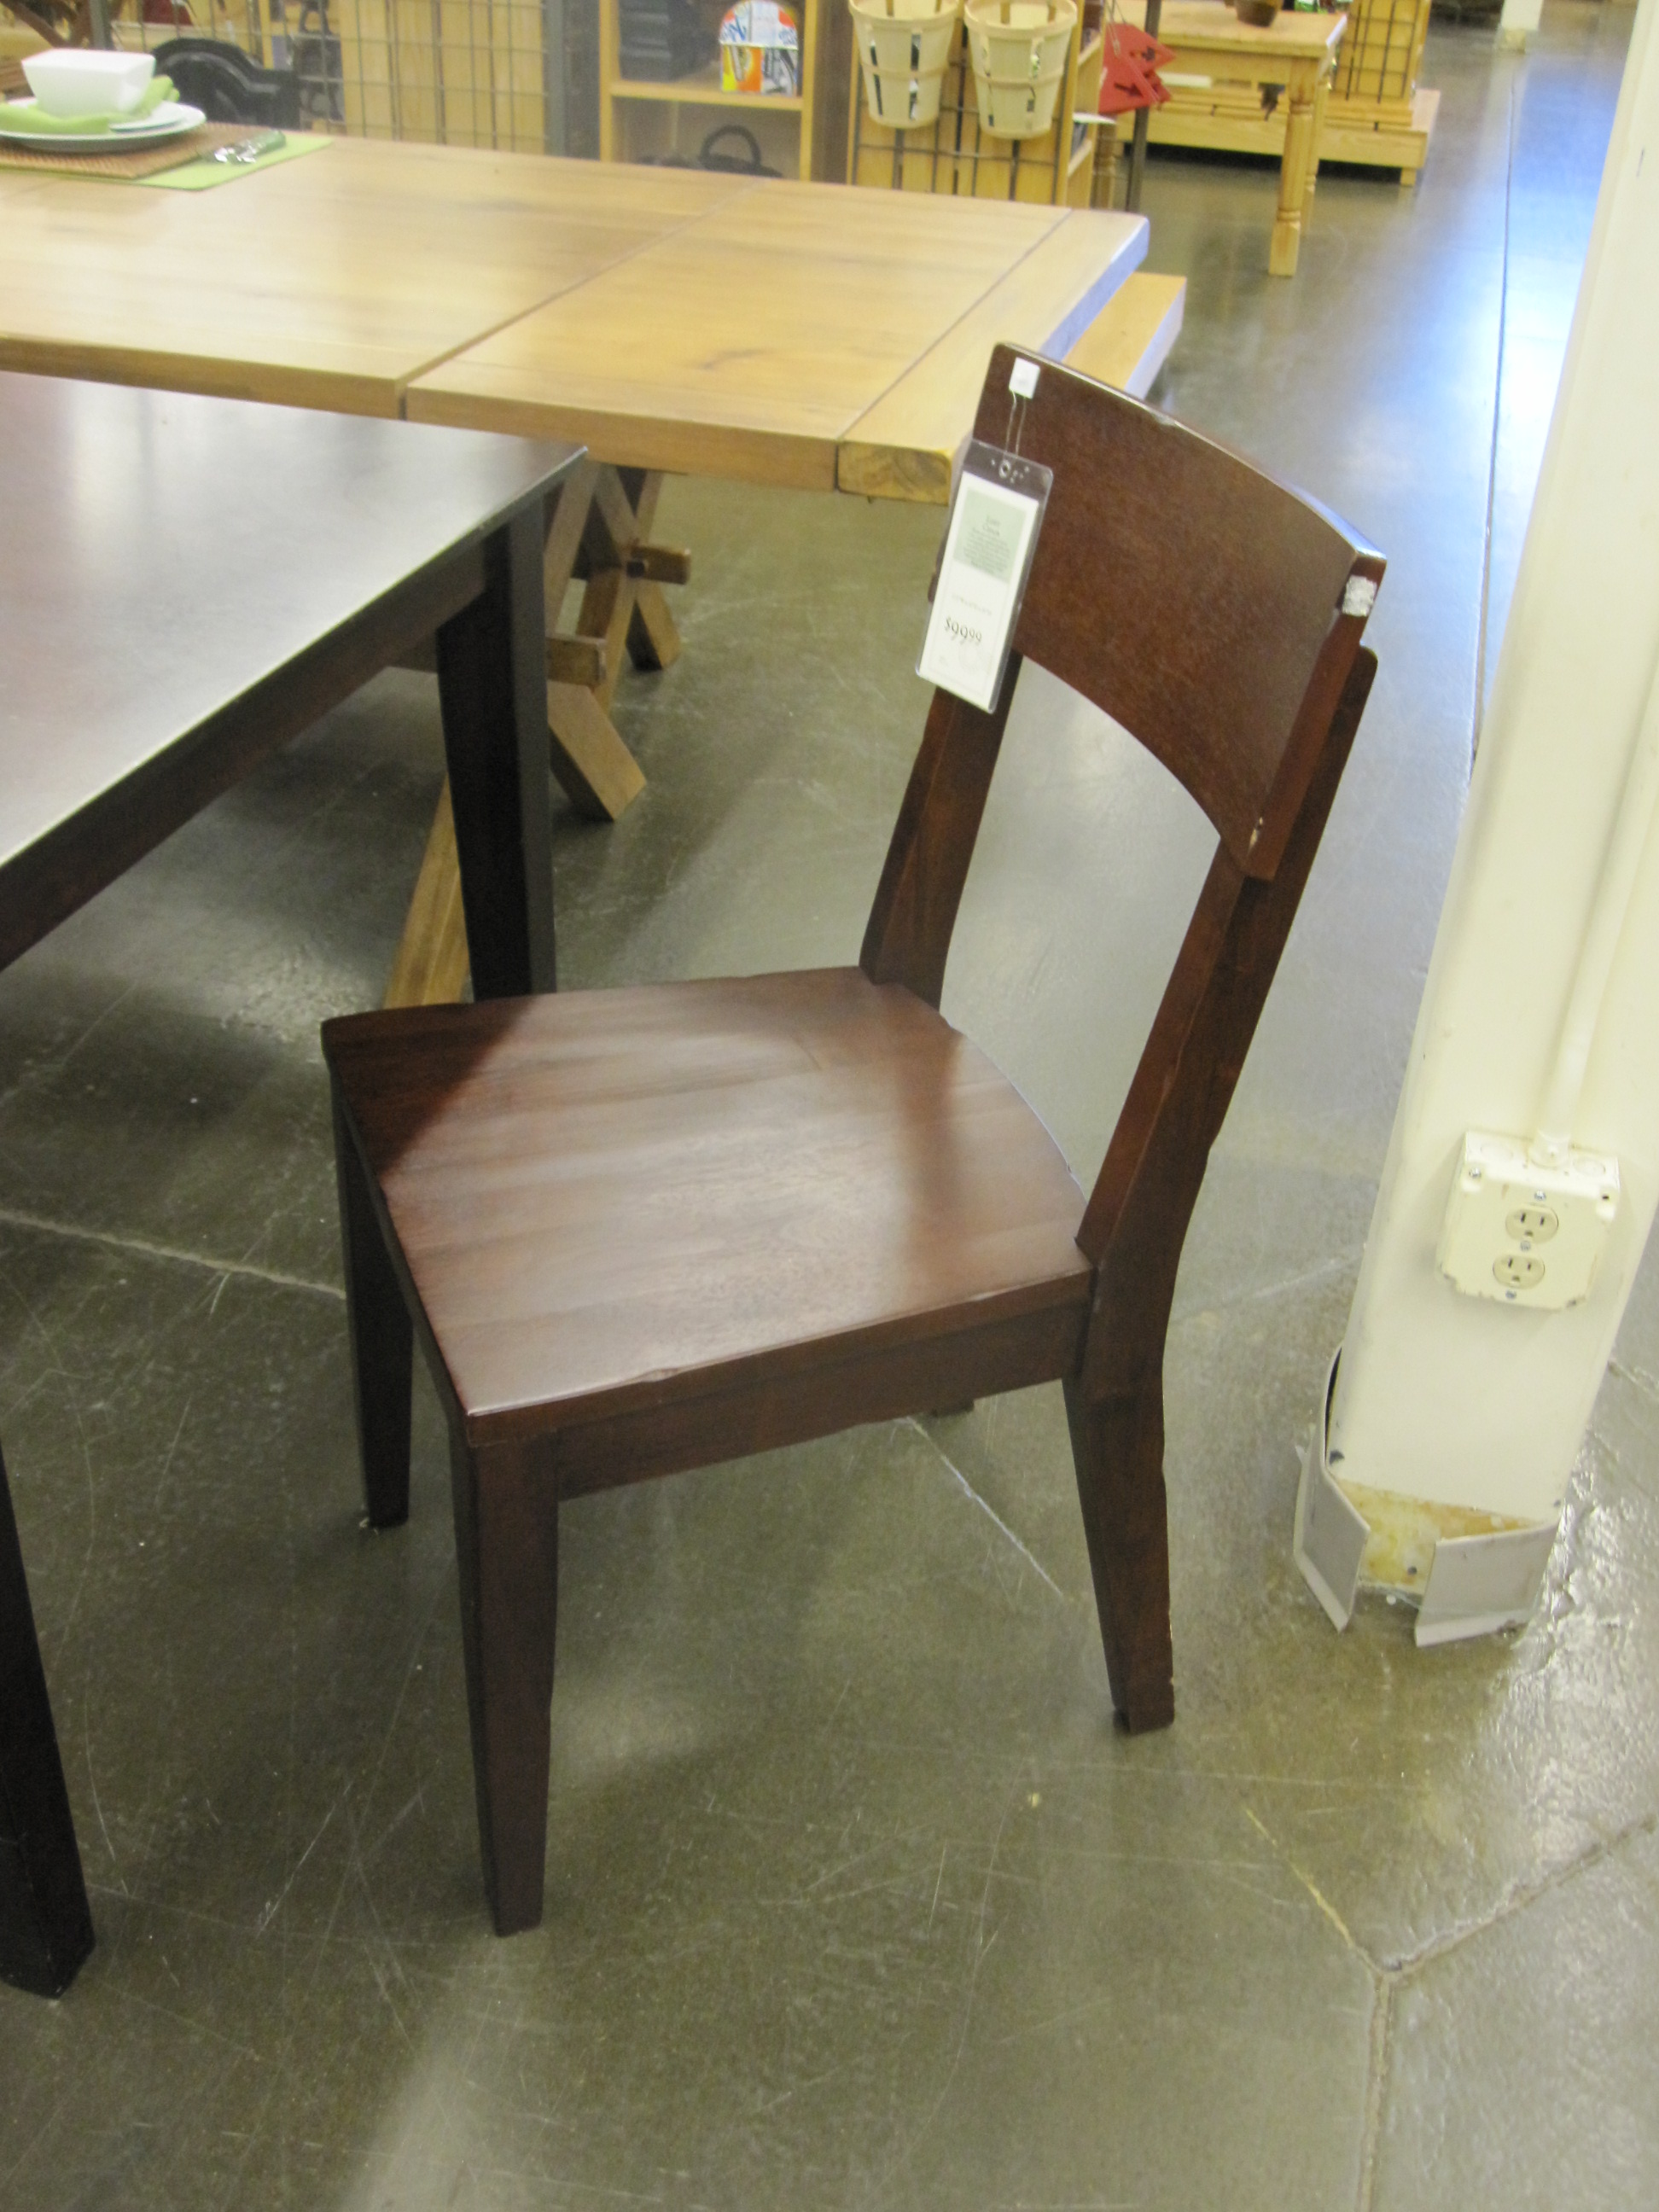 Diy Dining Chair Plans Pdf Download Woodworking With Kids